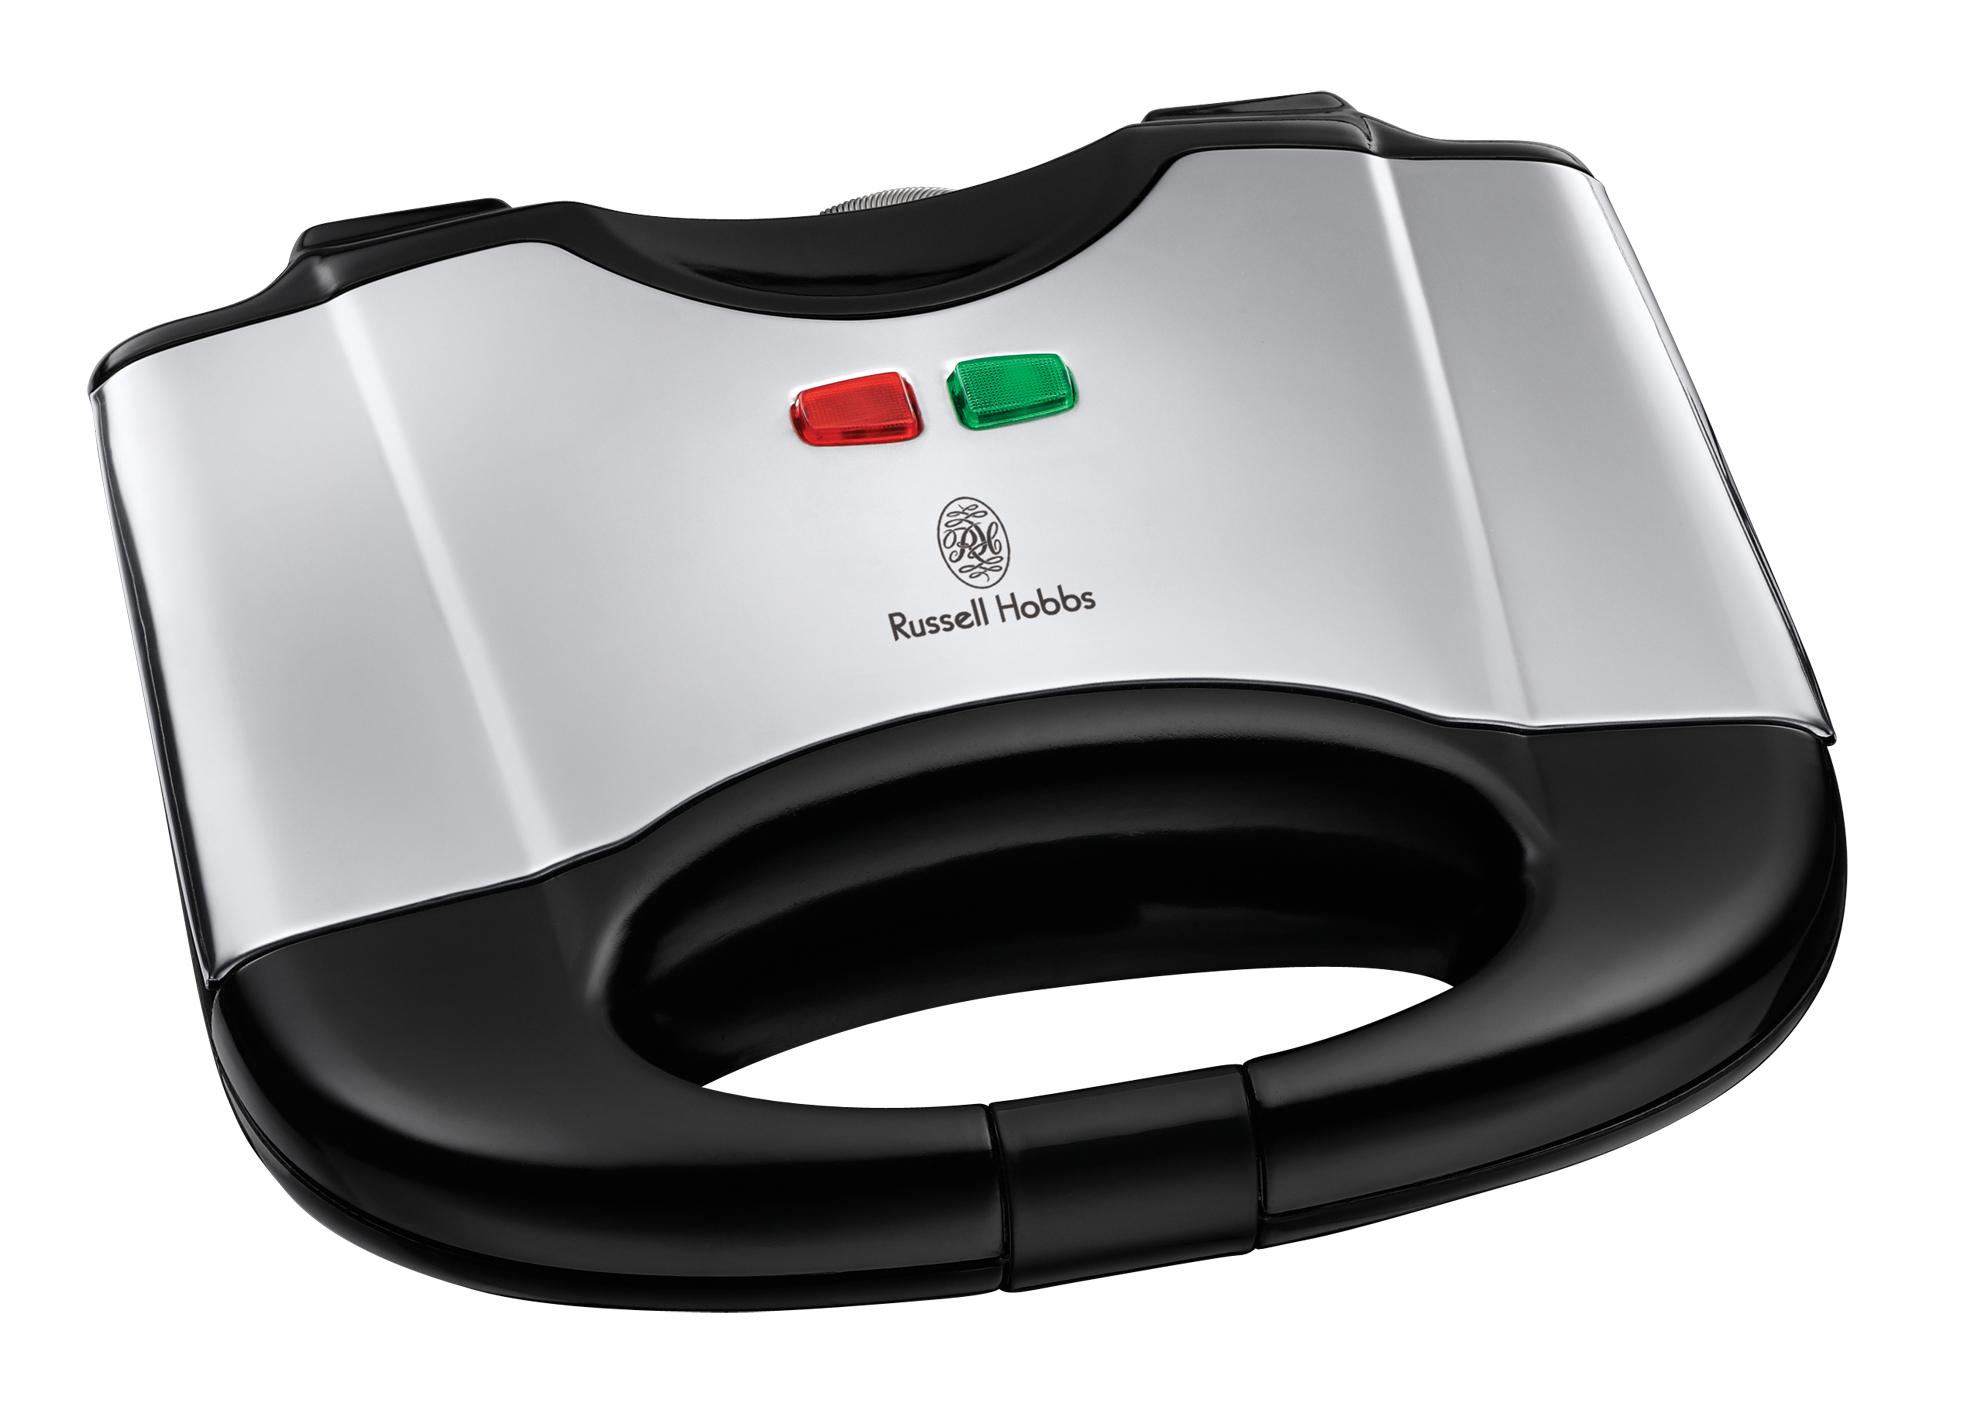 Russell hobbs glass panini press - View Larger